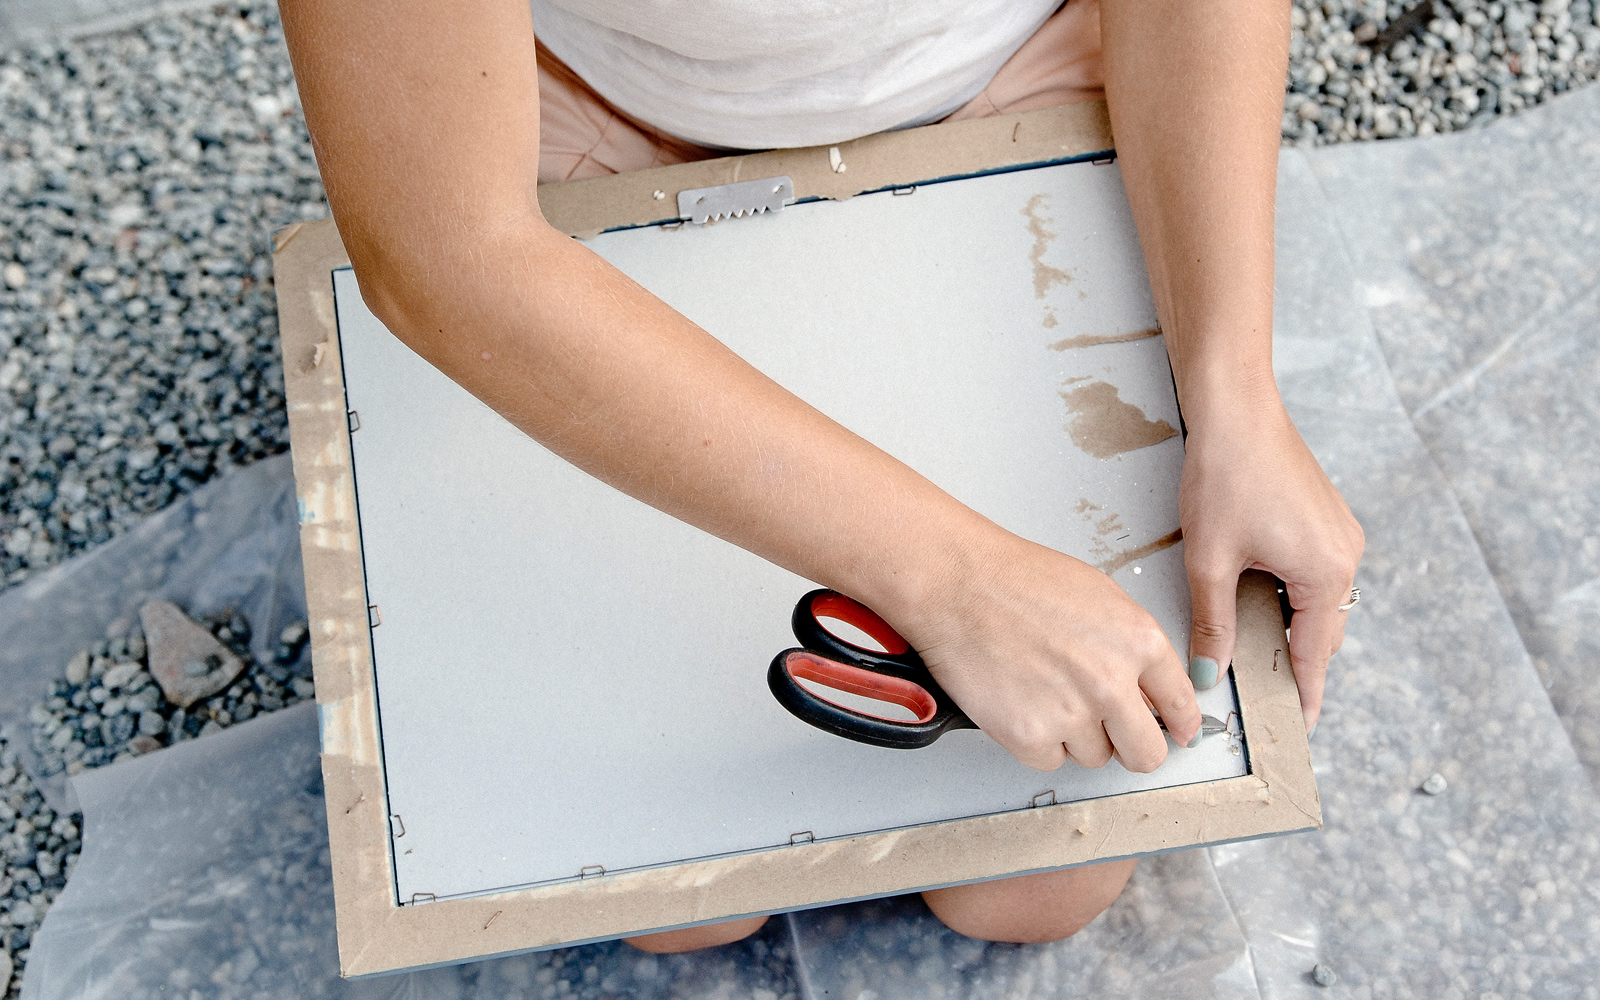 preparing picture frame for dry erase board